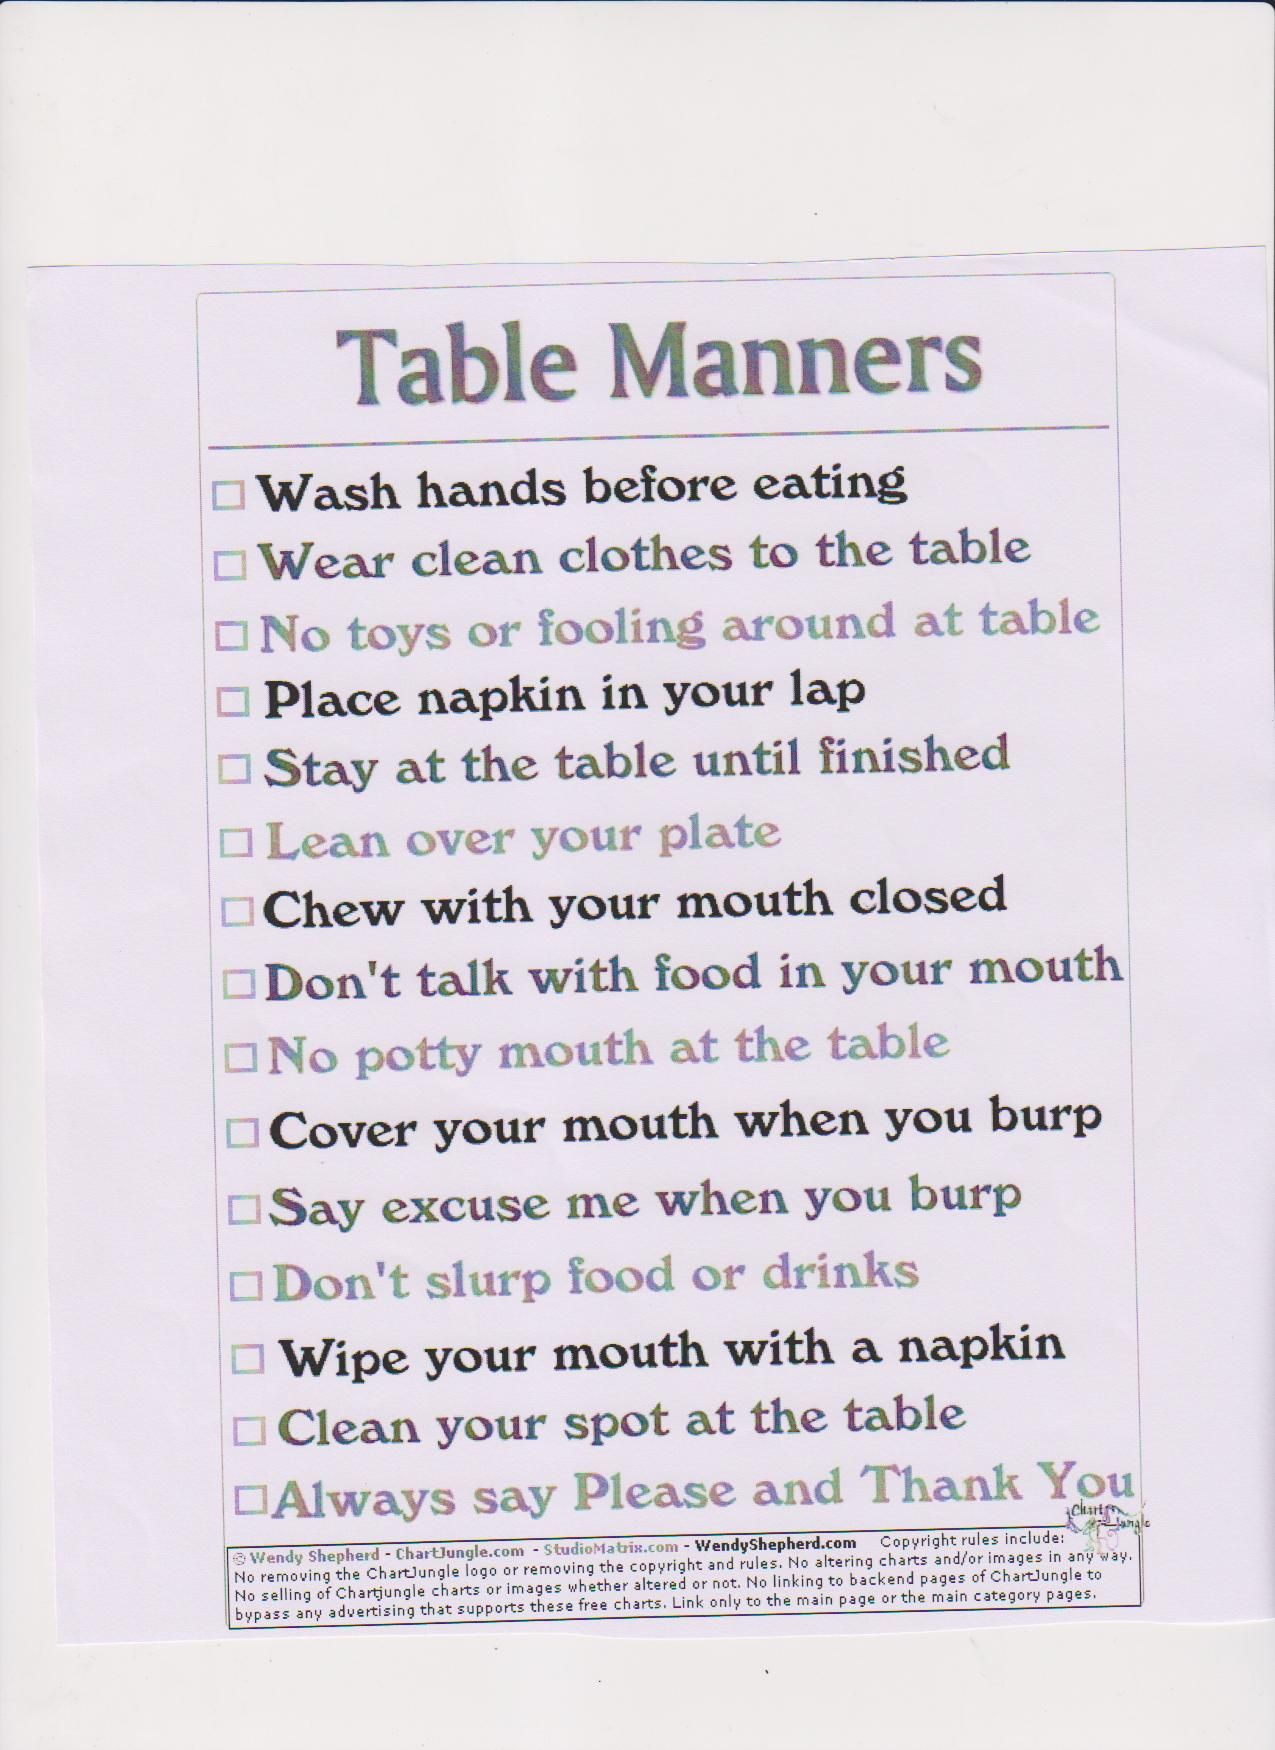 worksheet Manners Worksheet printables table manners worksheet safarmediapps worksheets etiquette syndeomedia restaurant chili and kids on pinterest